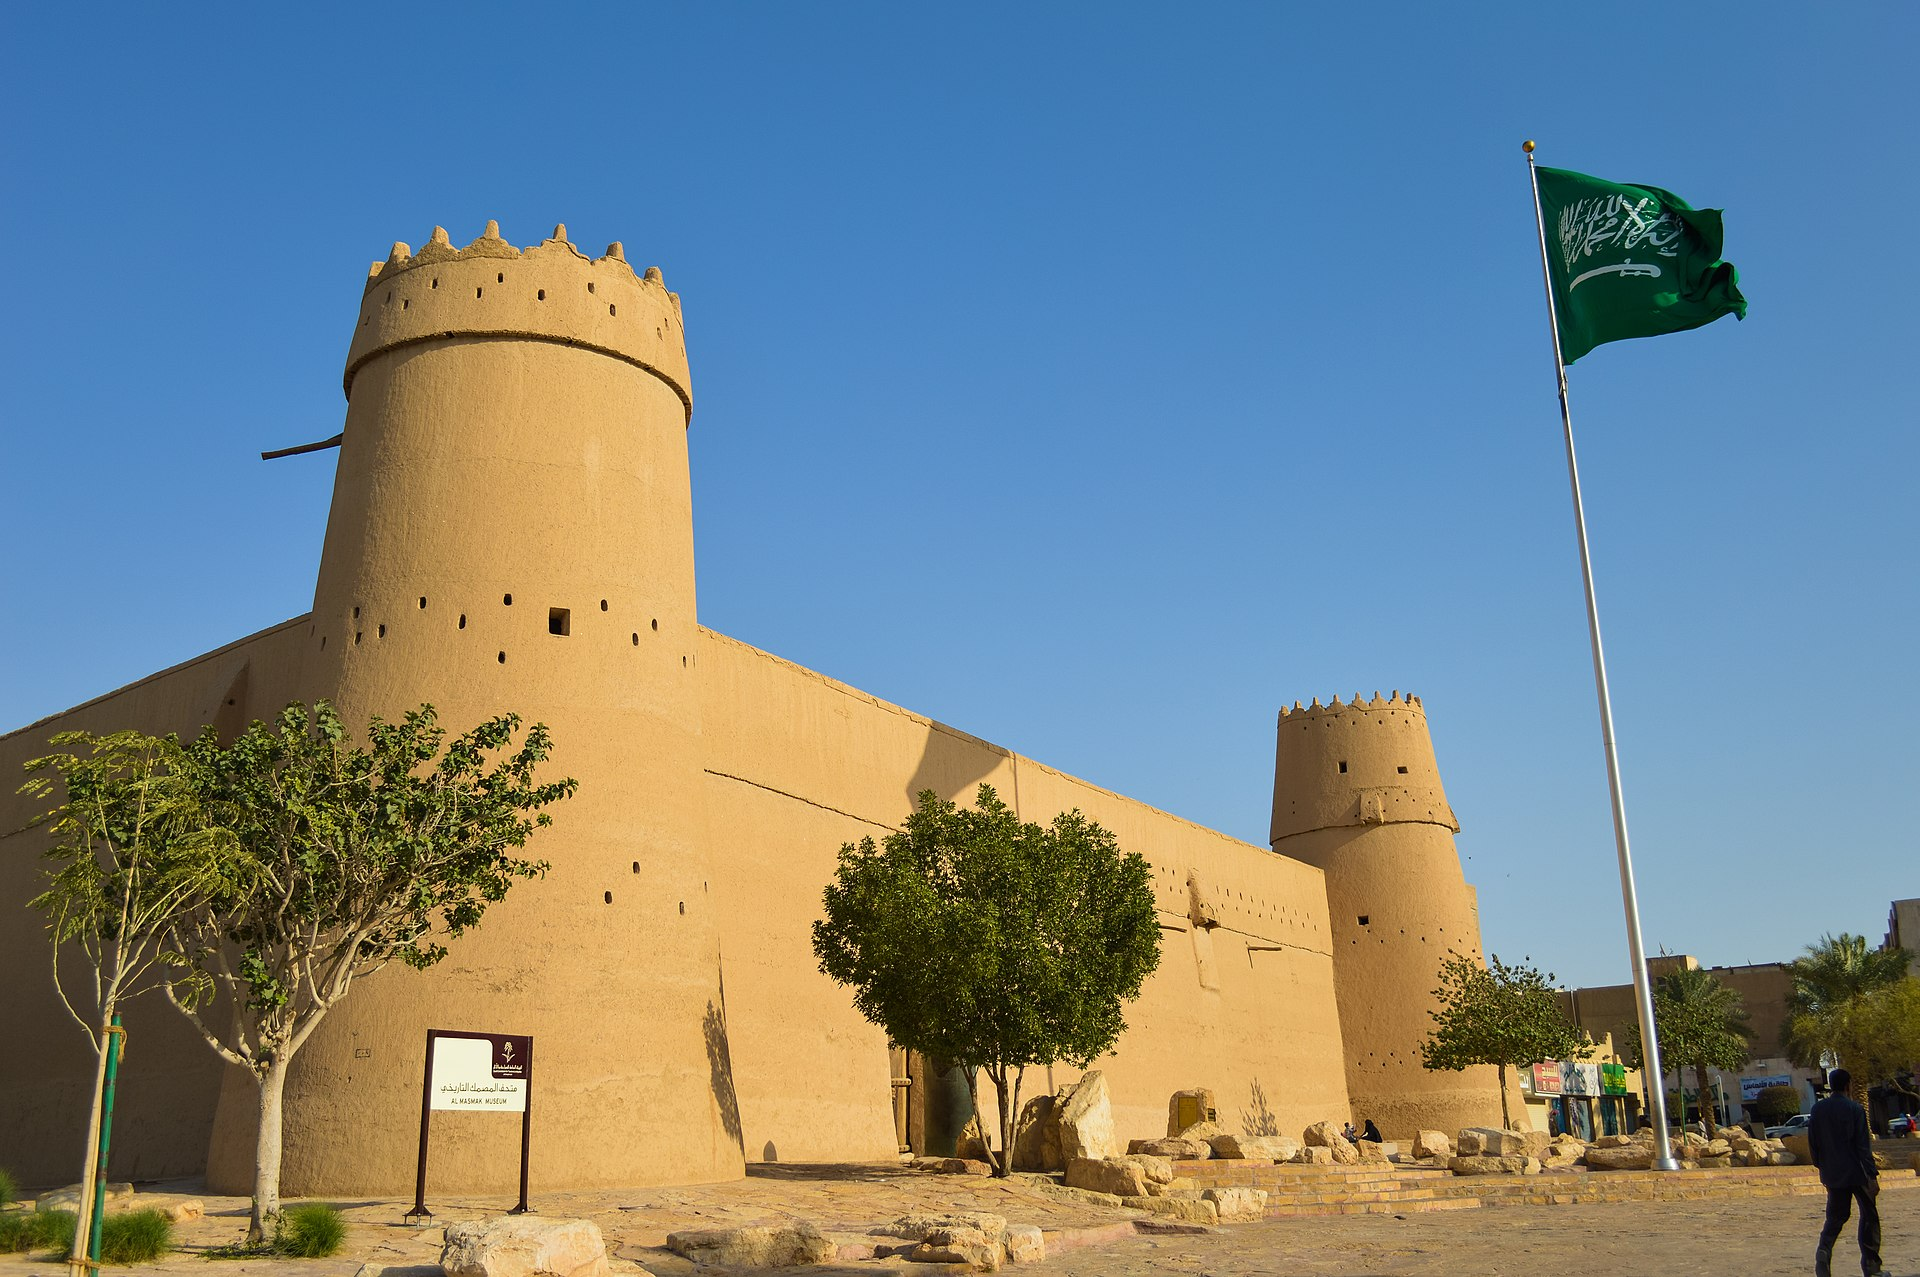 Things to do in Riyadh - Al Masmak Fort